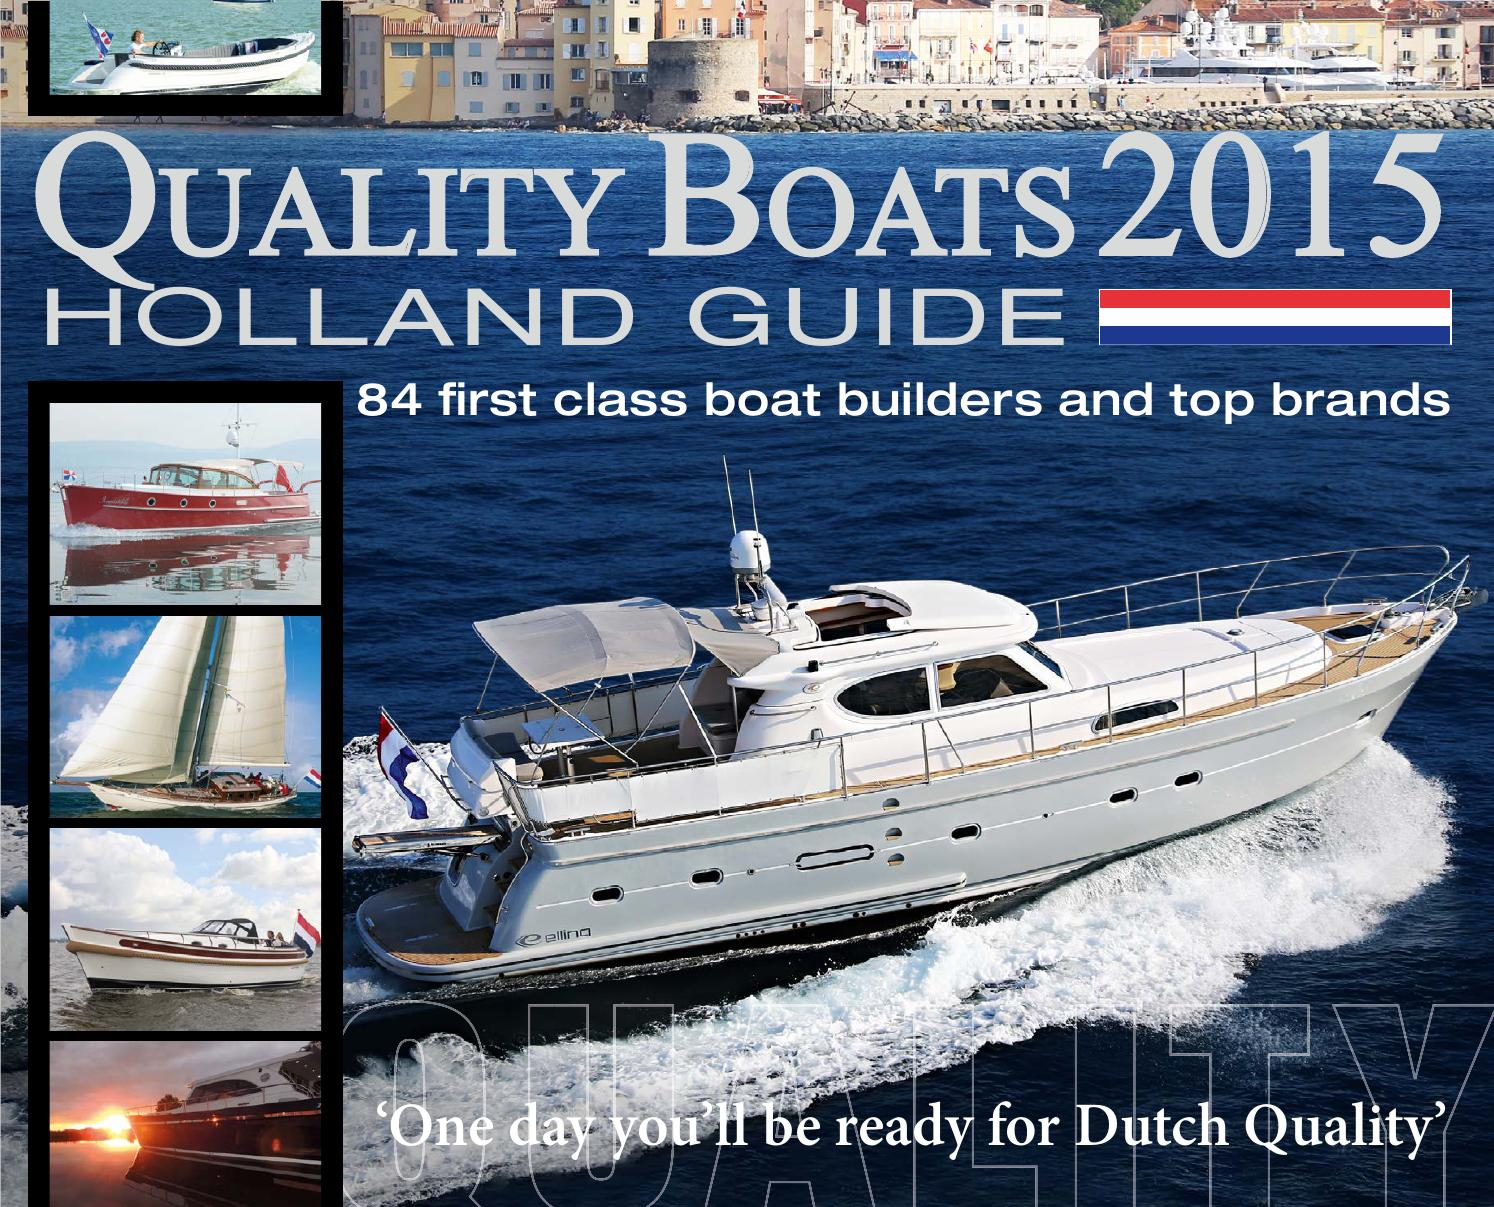 Quality Boats Holland Guide 2015 by Quality Boats Holland Guide ...